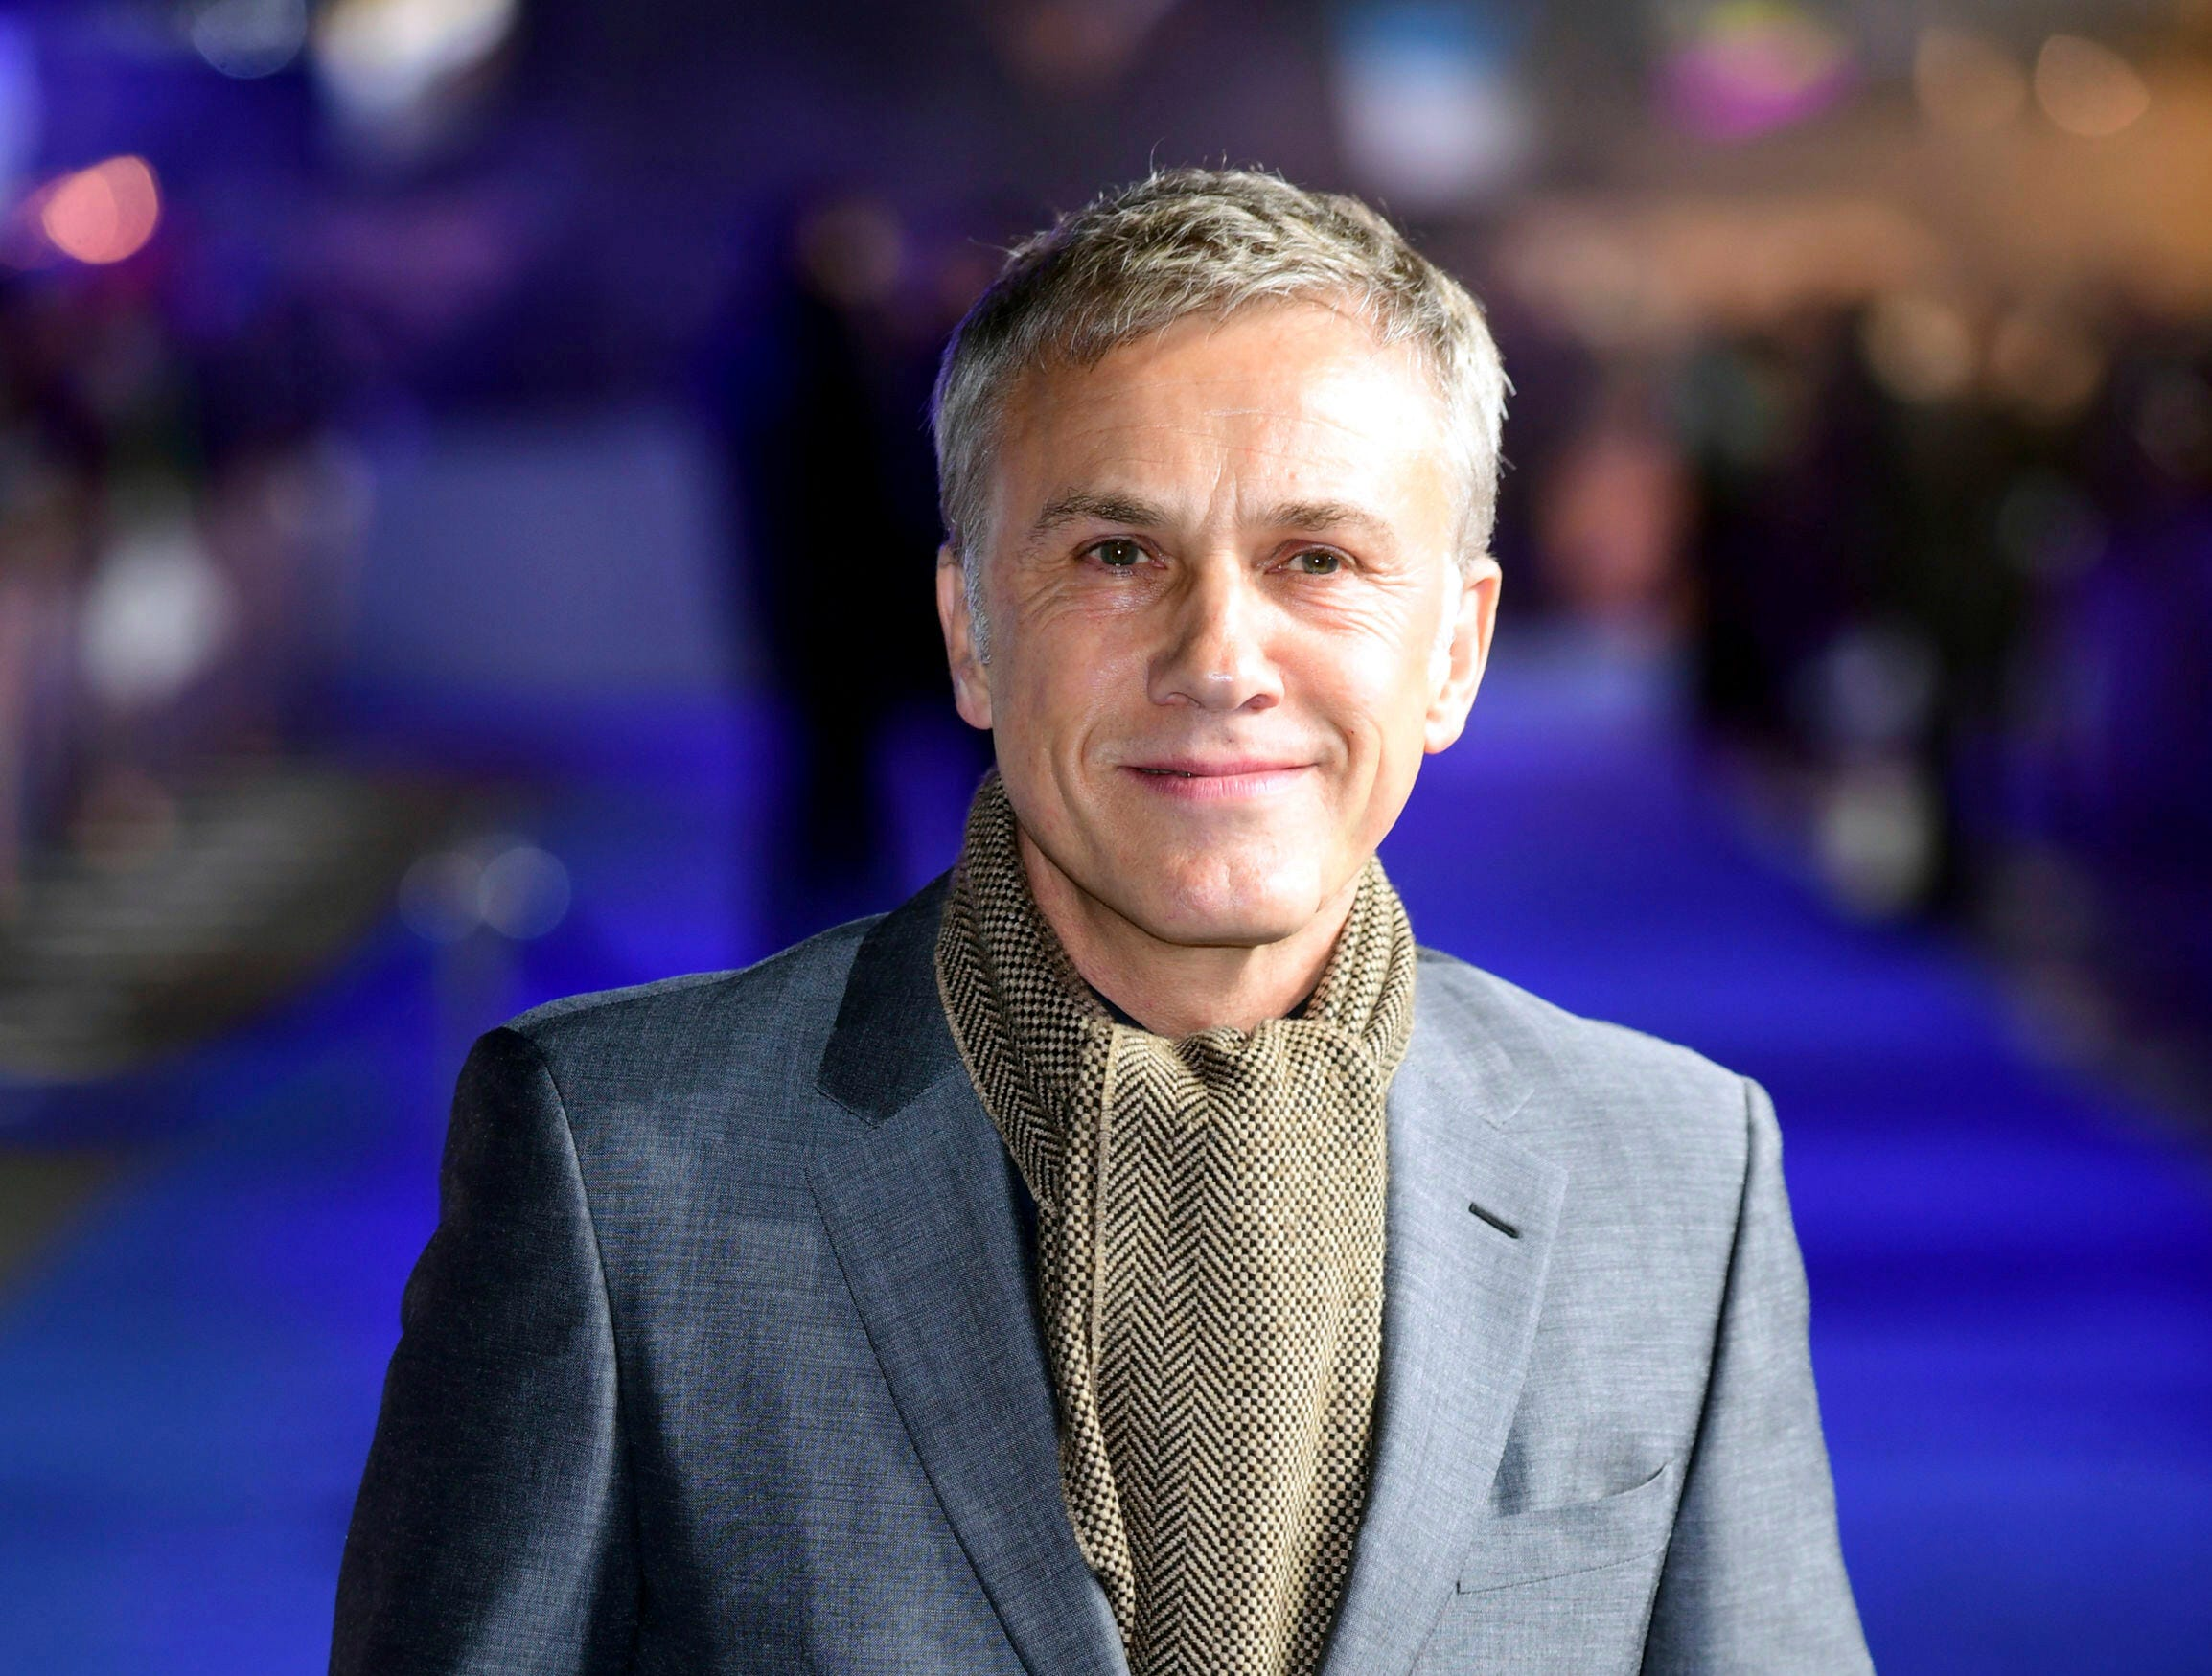 """Actor Christoph Waltz poses for the media at the world premiere of """"Alita: Battle Angel"""" in central London, Thursday, Jan. 31, 2019."""